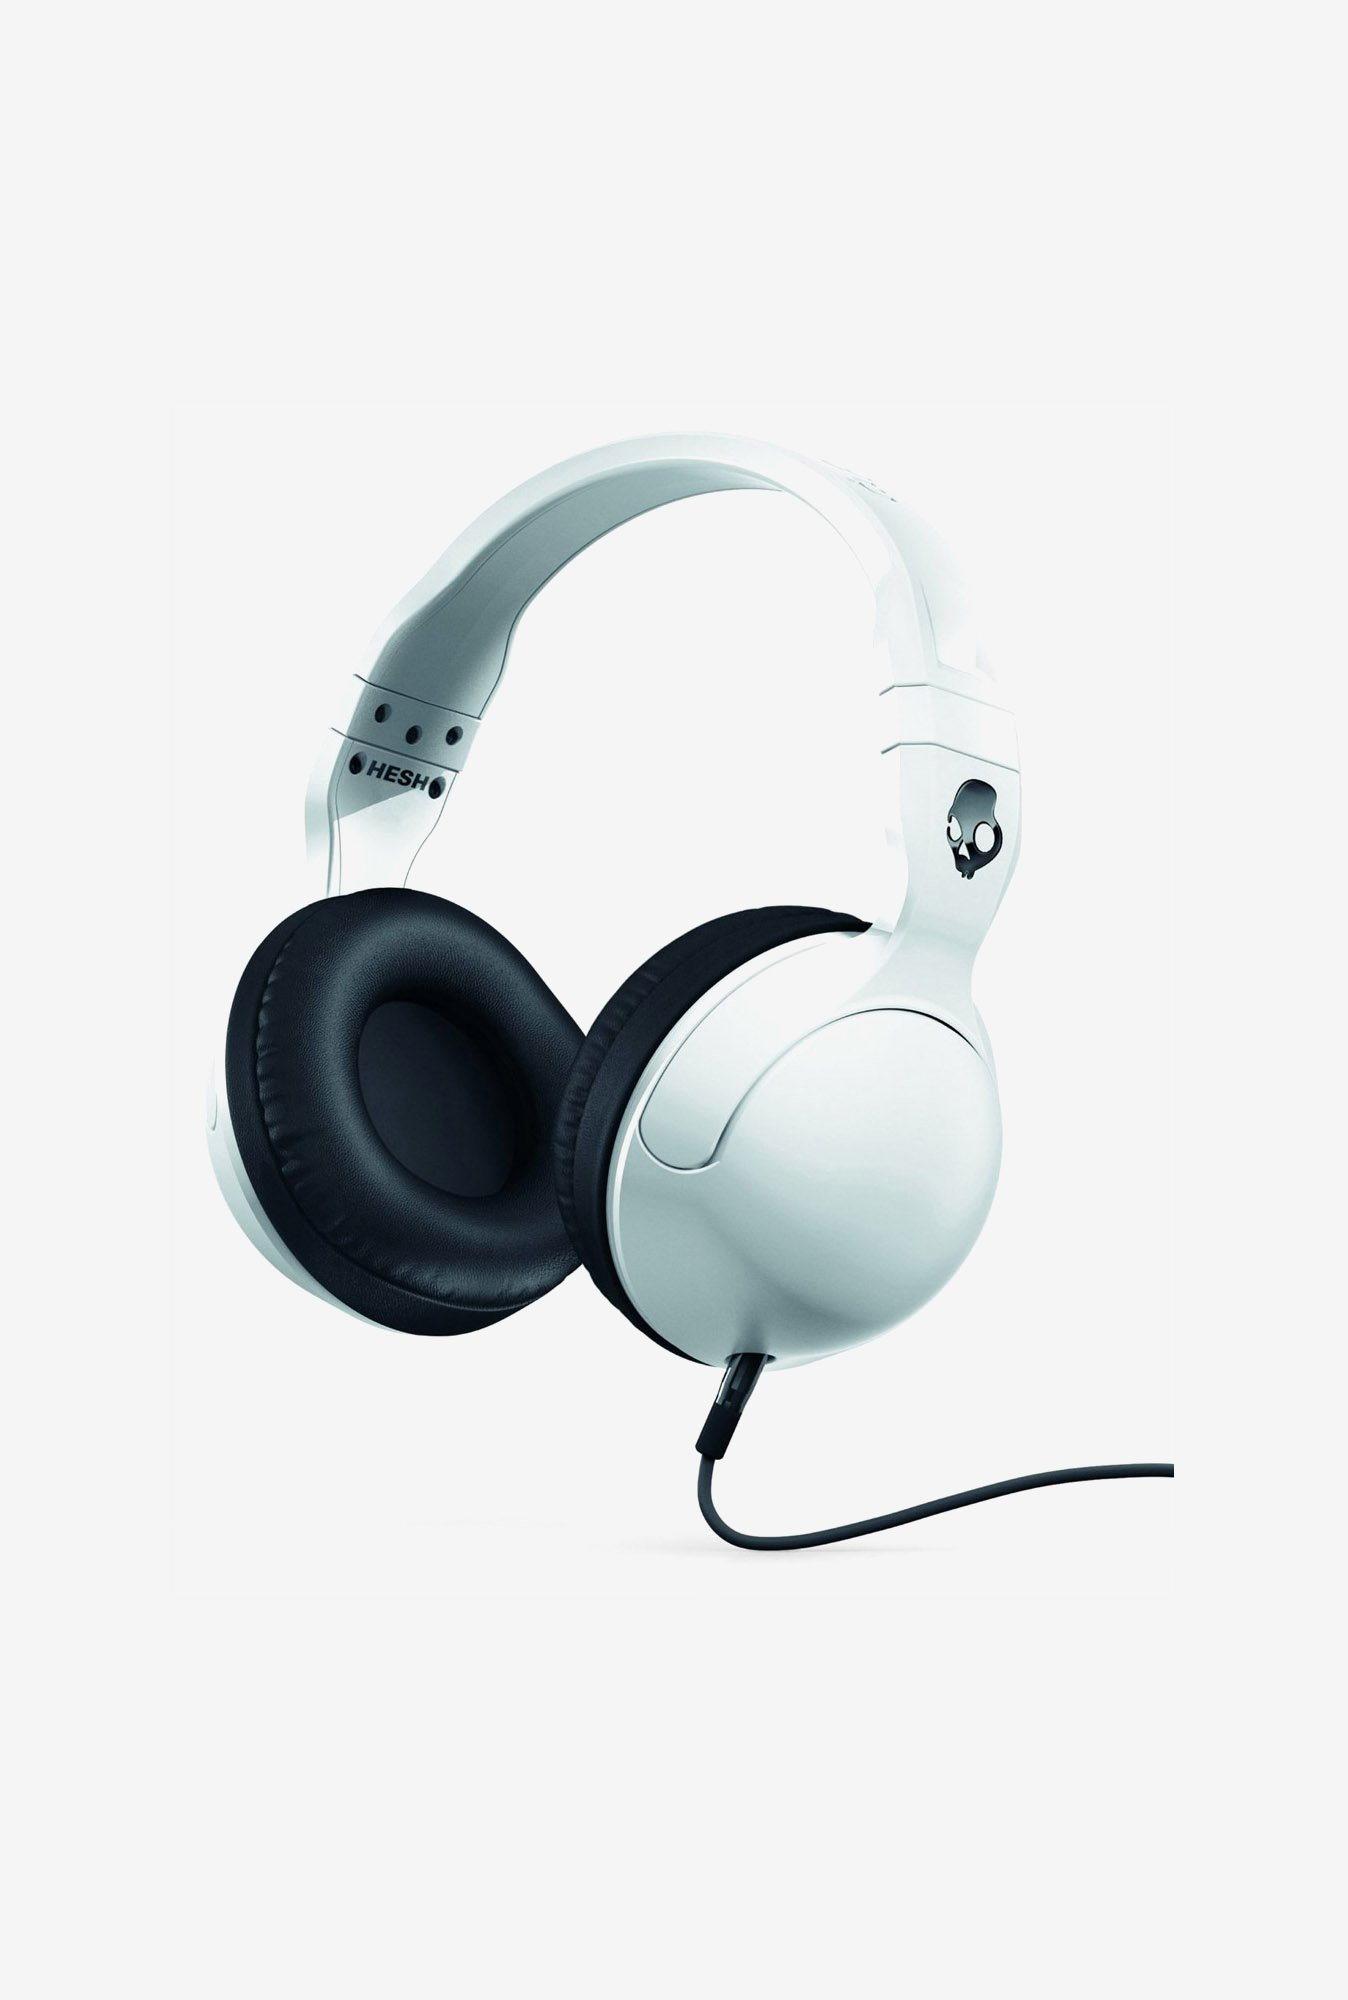 Skullcandy Hesh 2.0 S6HSGY-378 Over Ear Headphone White